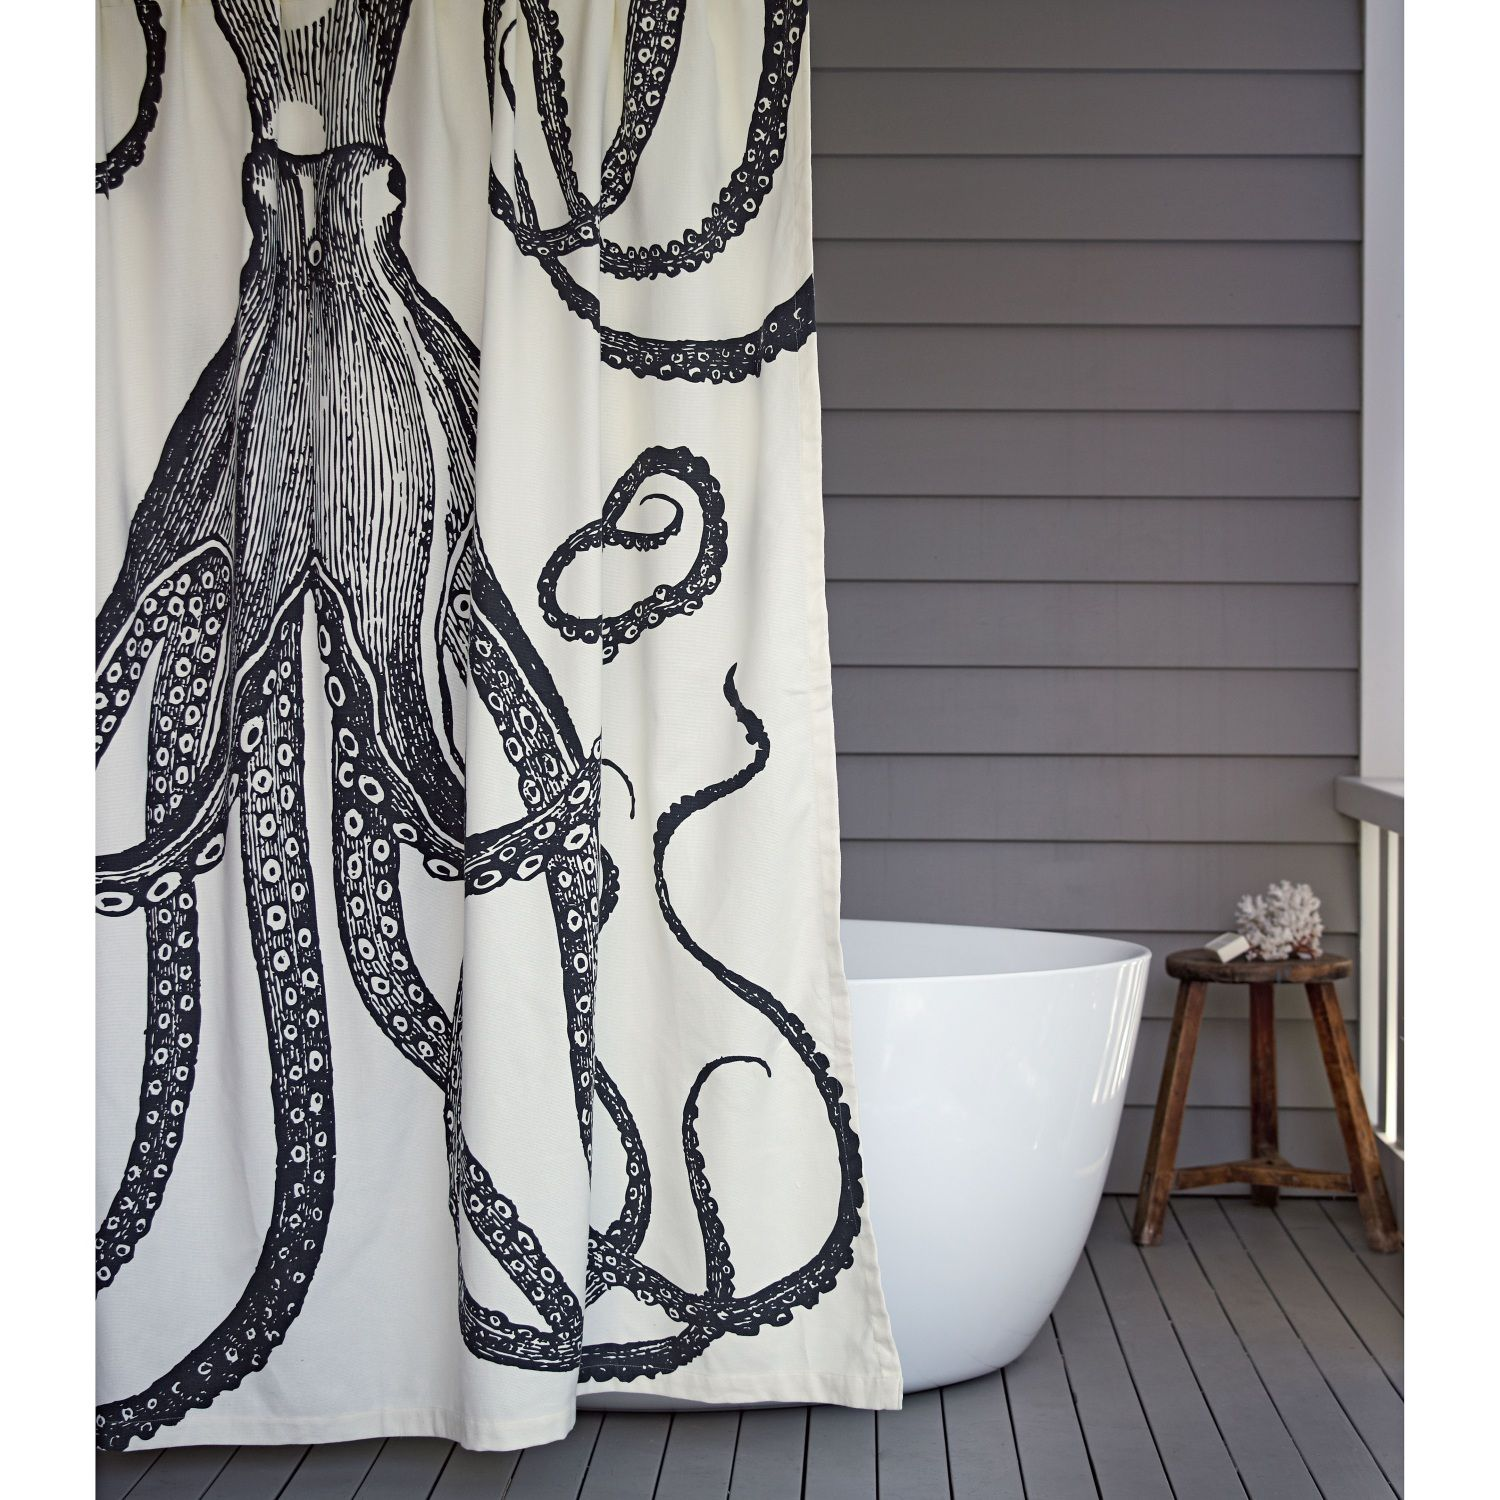 Octopus Shower Curtain | Domayne Online Store